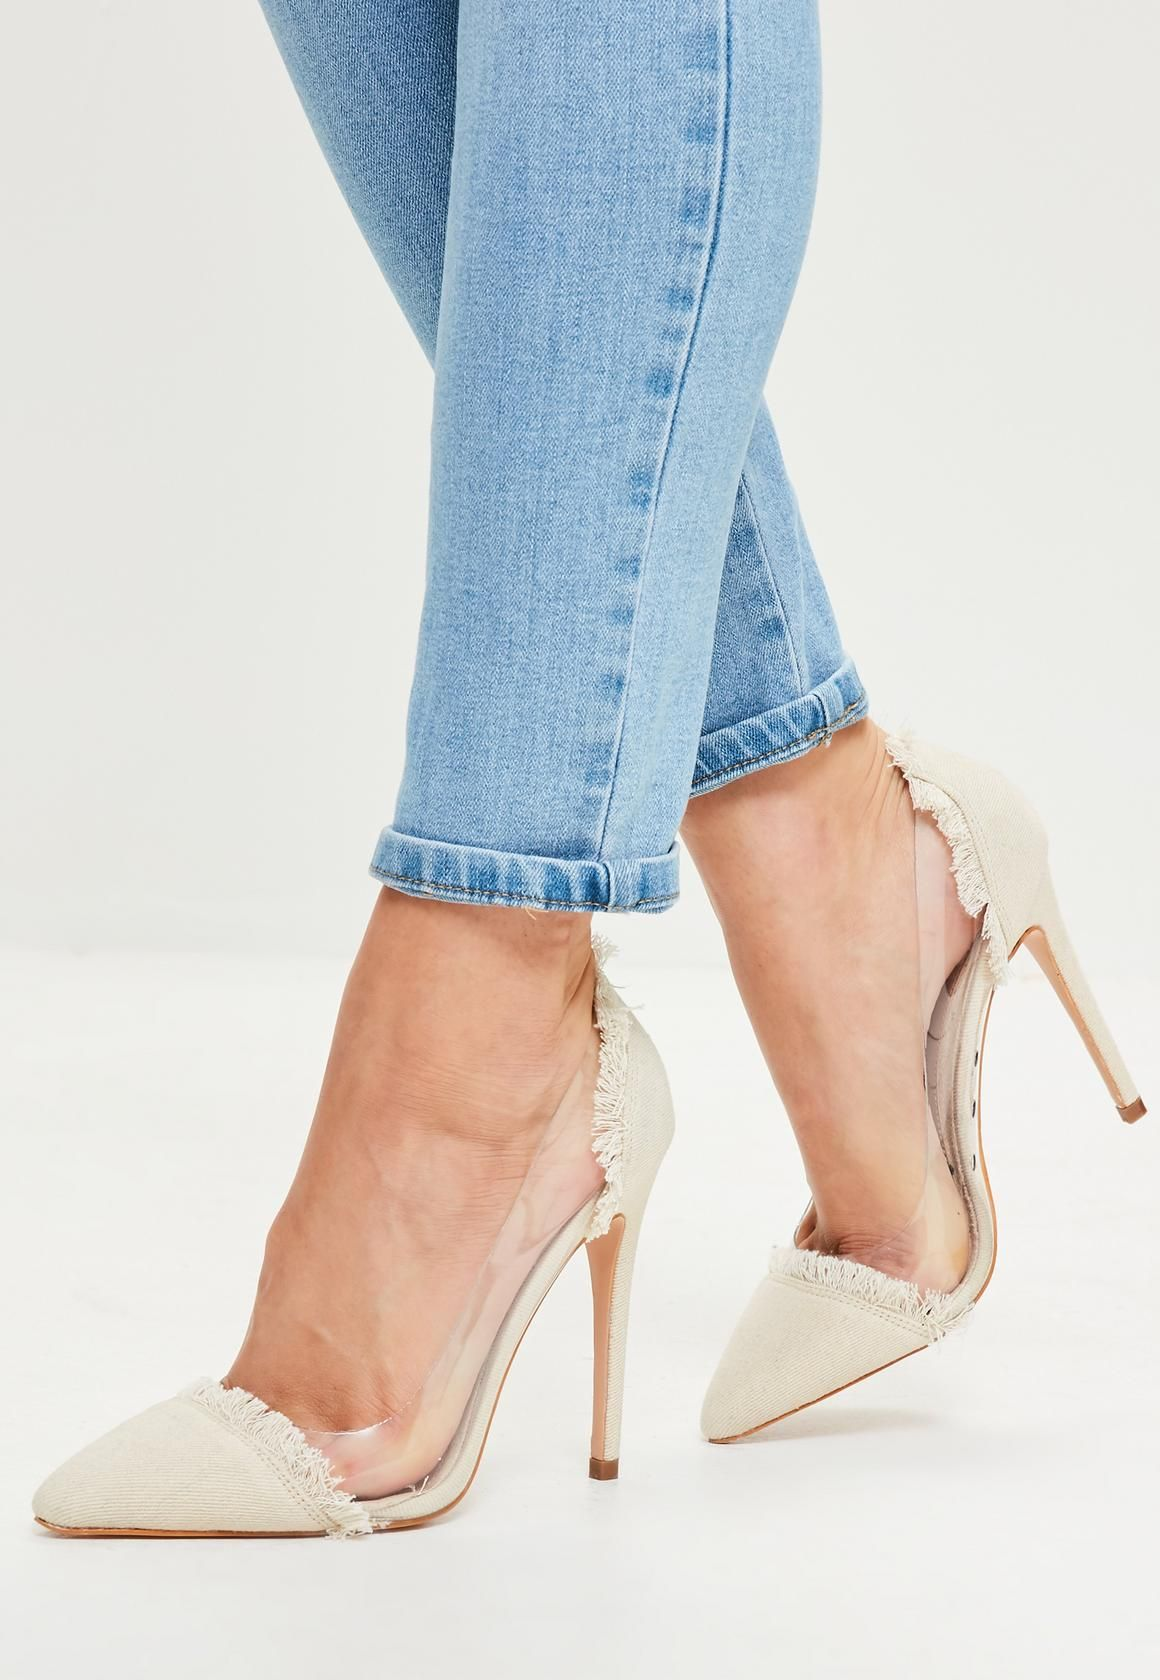 Missguided Pointed Court Shoe - Beige 4gSsD7y